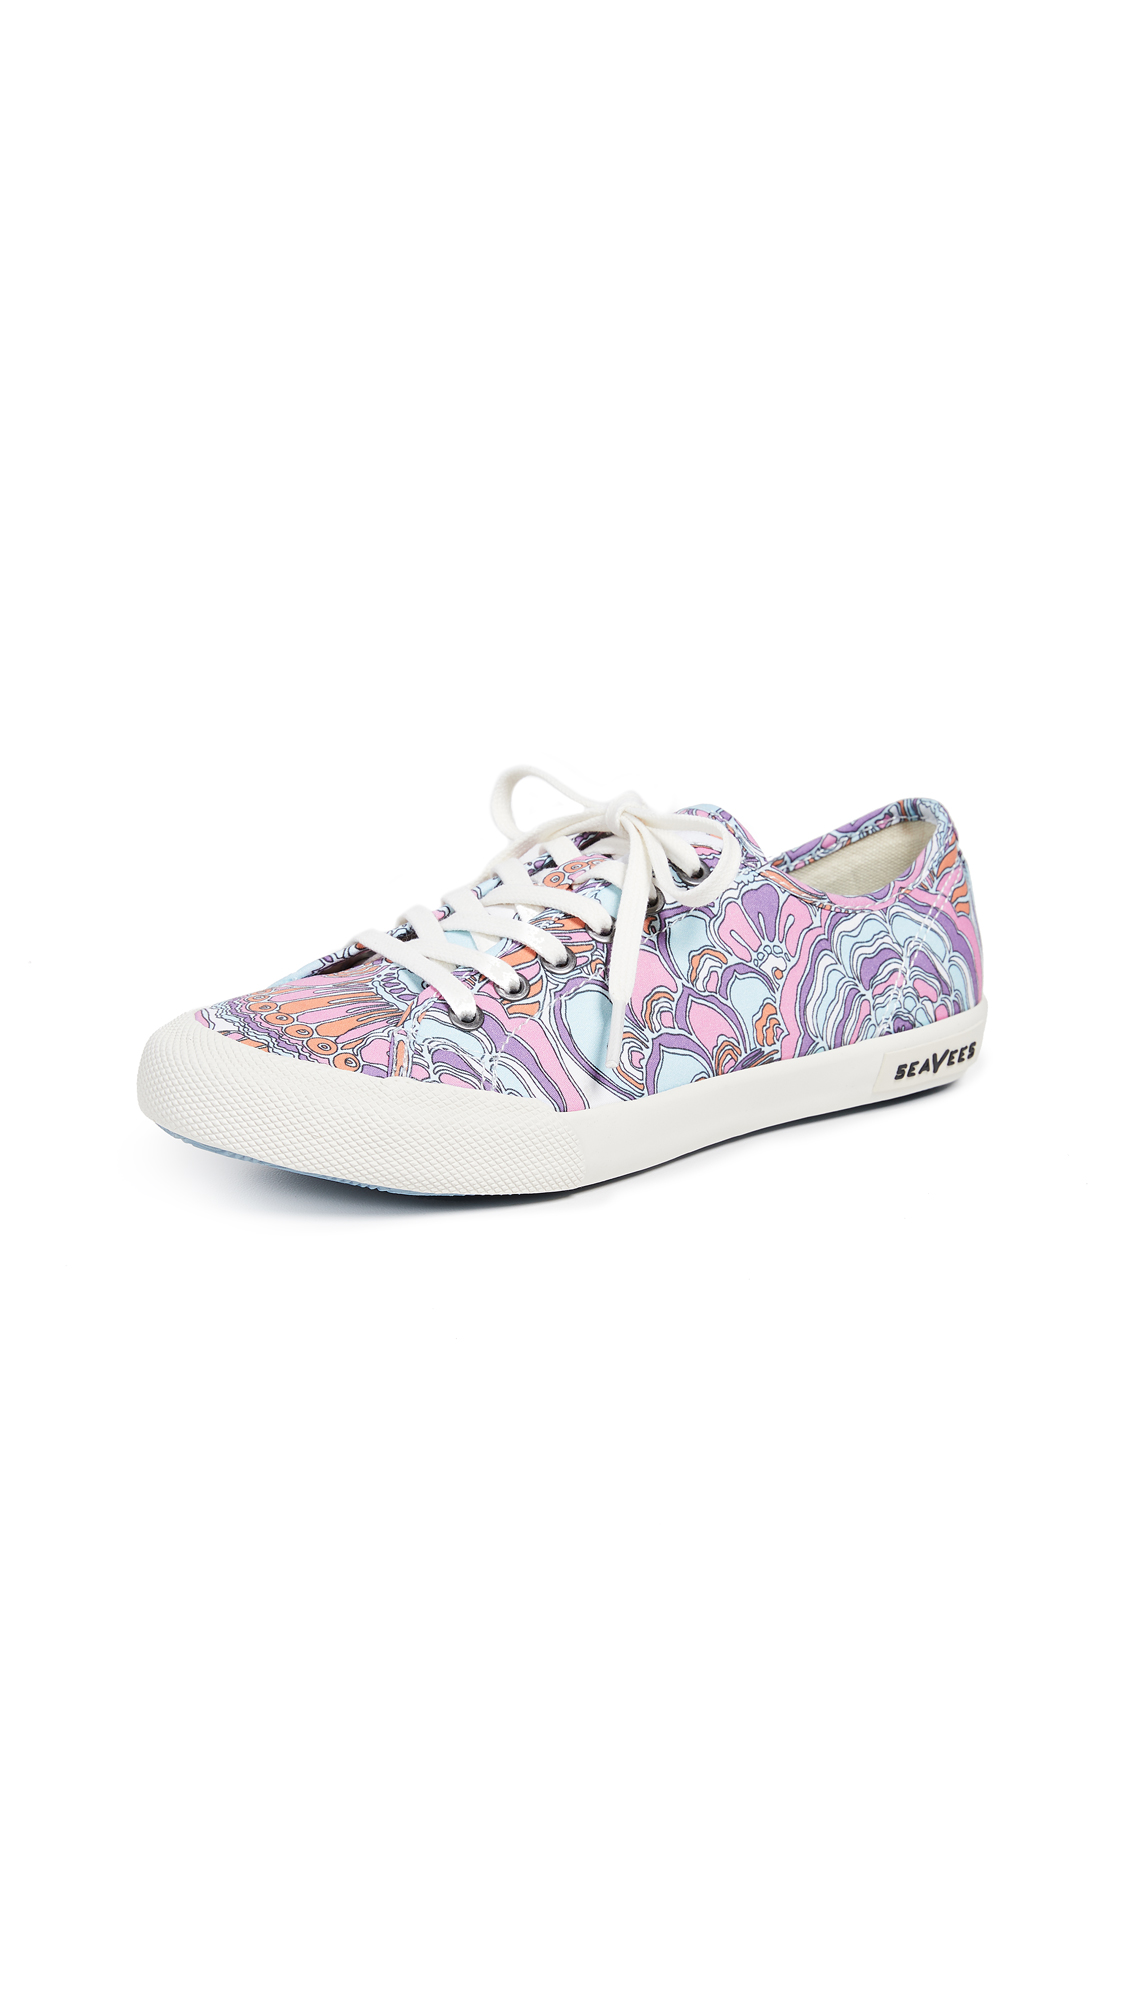 SeaVees Trina Turk Monterey Sneakers - Cosmo Bouquet